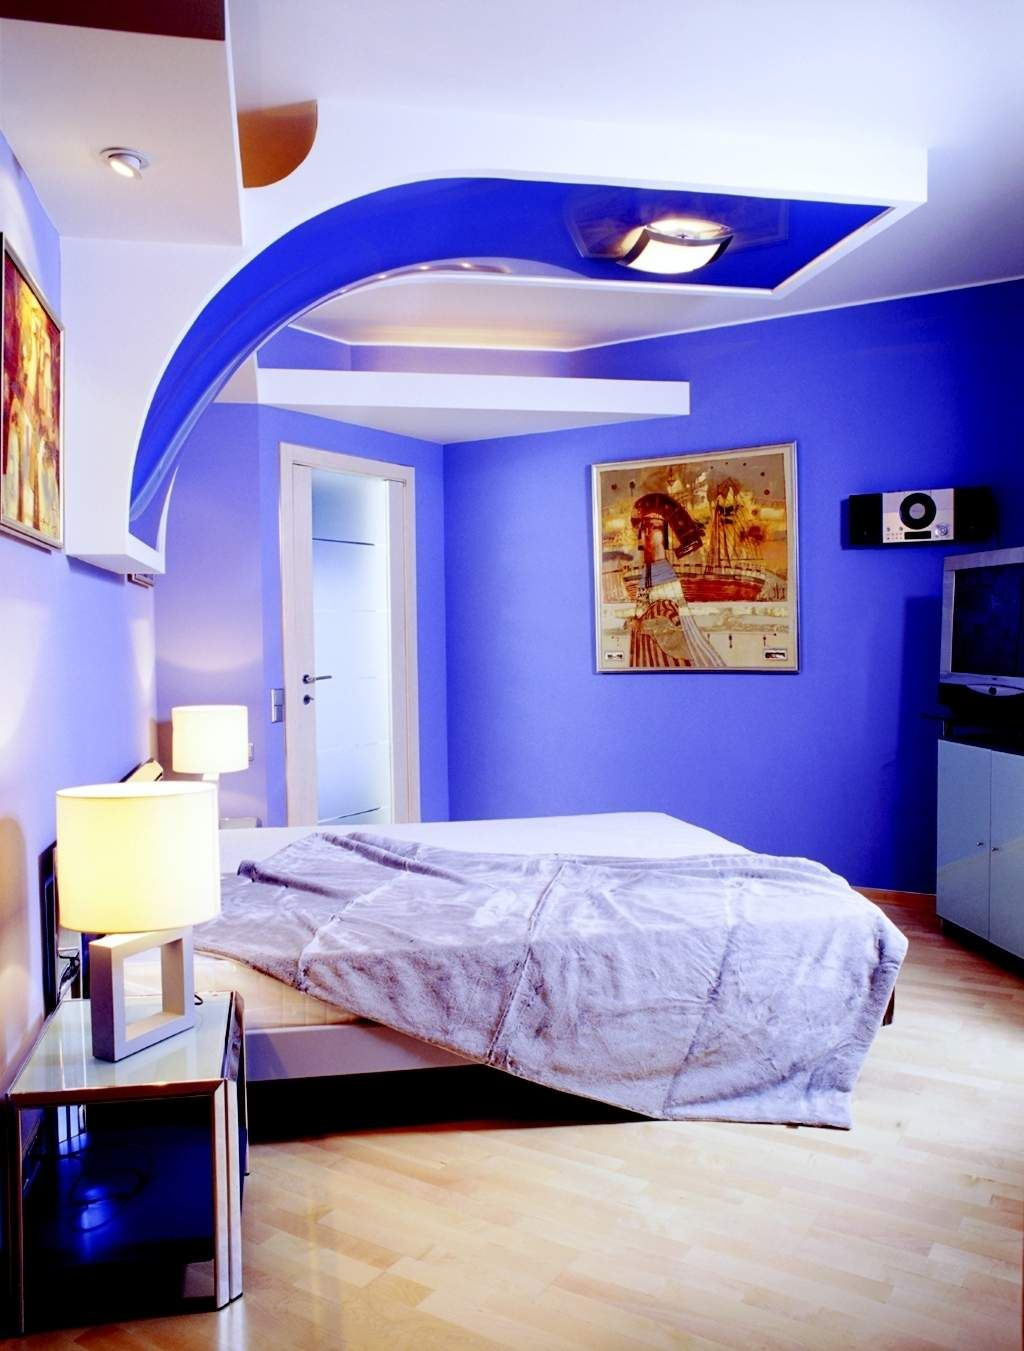 kids bedroom futuristic design of boys bedroom in bright blue and white color scheme cool color - Color Bedroom Design